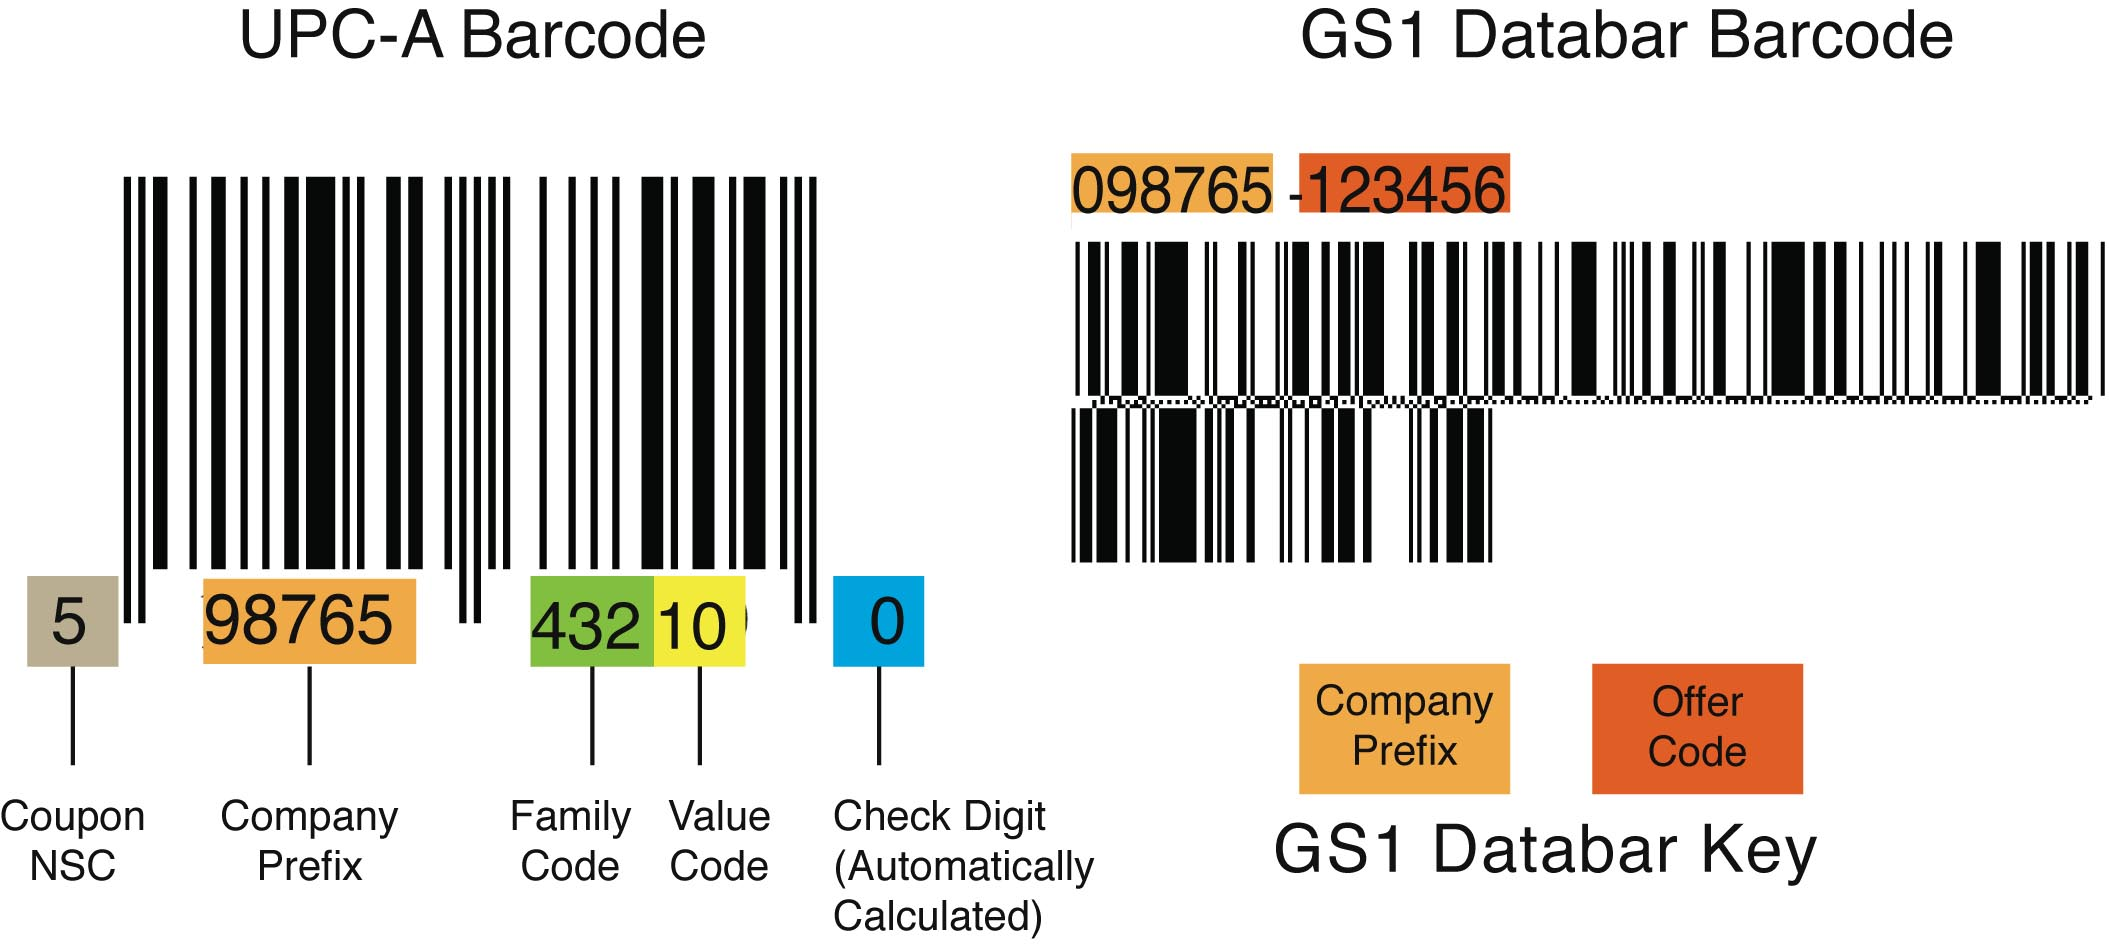 Barcode Graphic